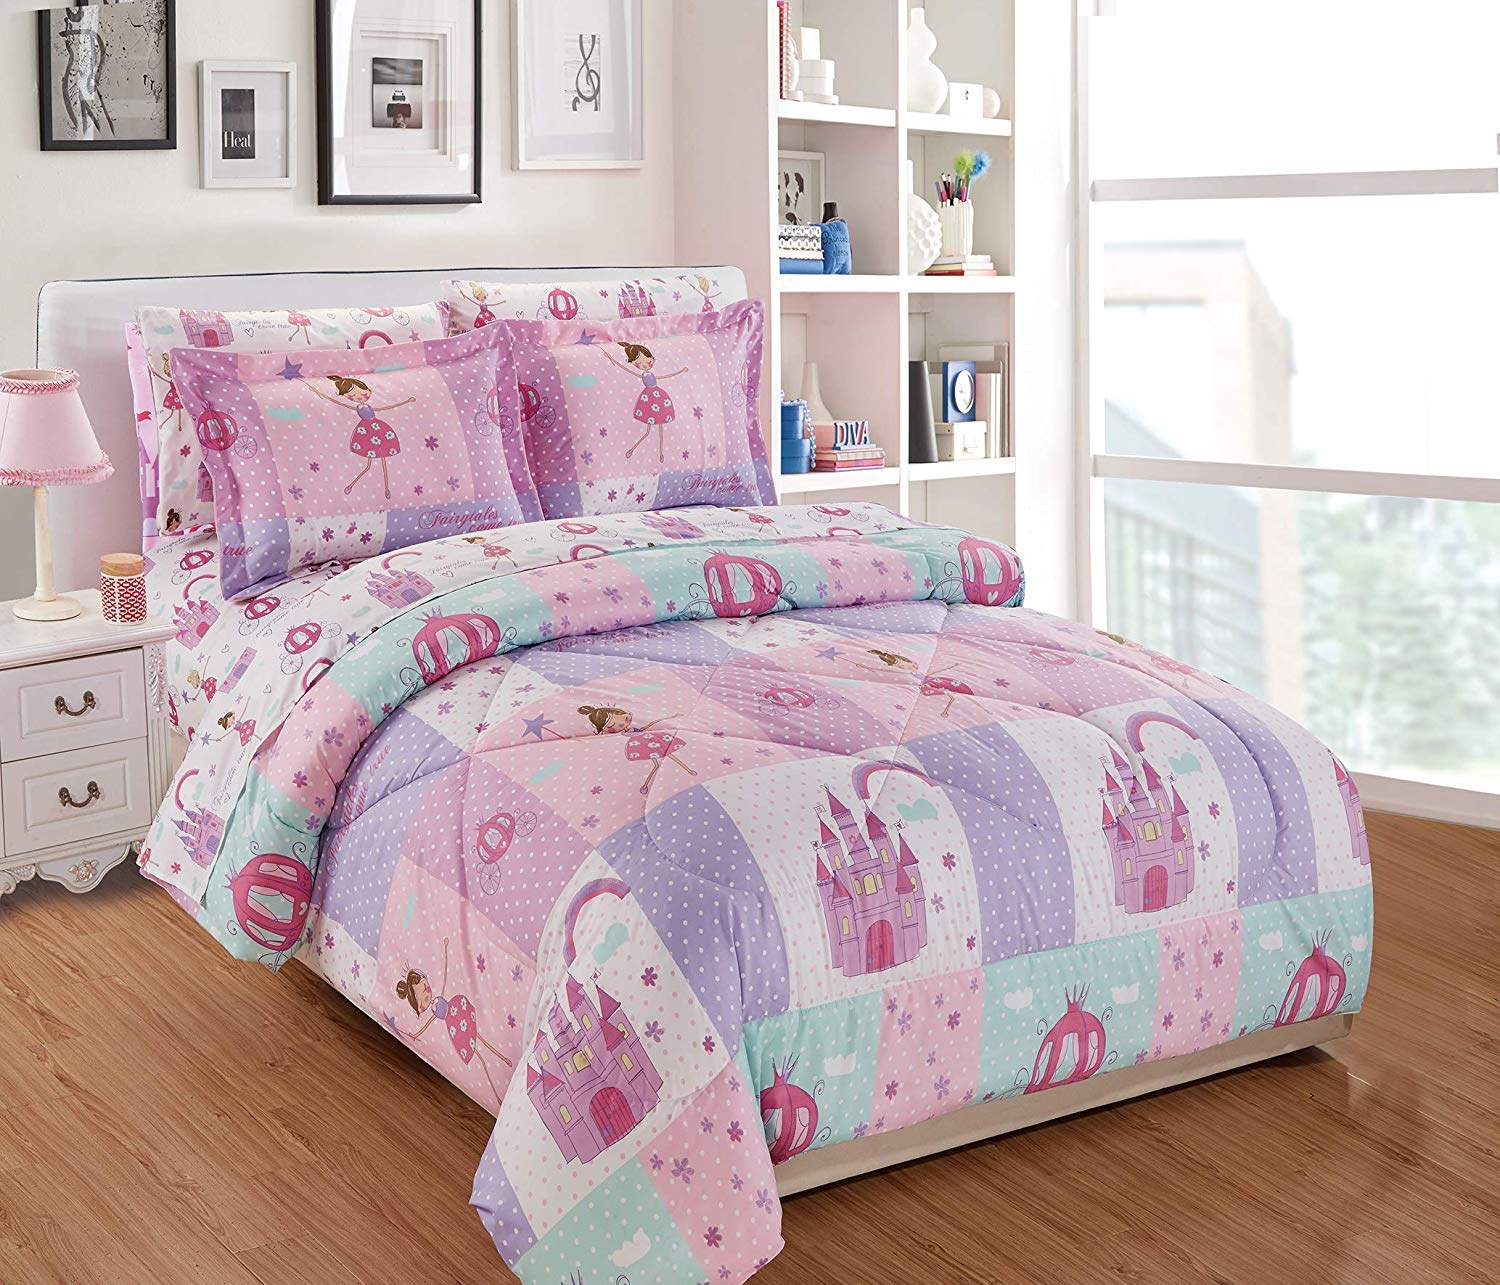 Elegant Homes Multicolor Pink Lavender Lilac Blue Princess Fairy Tales Palace Castle Design 7 Piece Comforter Bedding Set for Girls/Kids Bed in a Bag with Sheet Set # Fairy Tales (Queen Size)